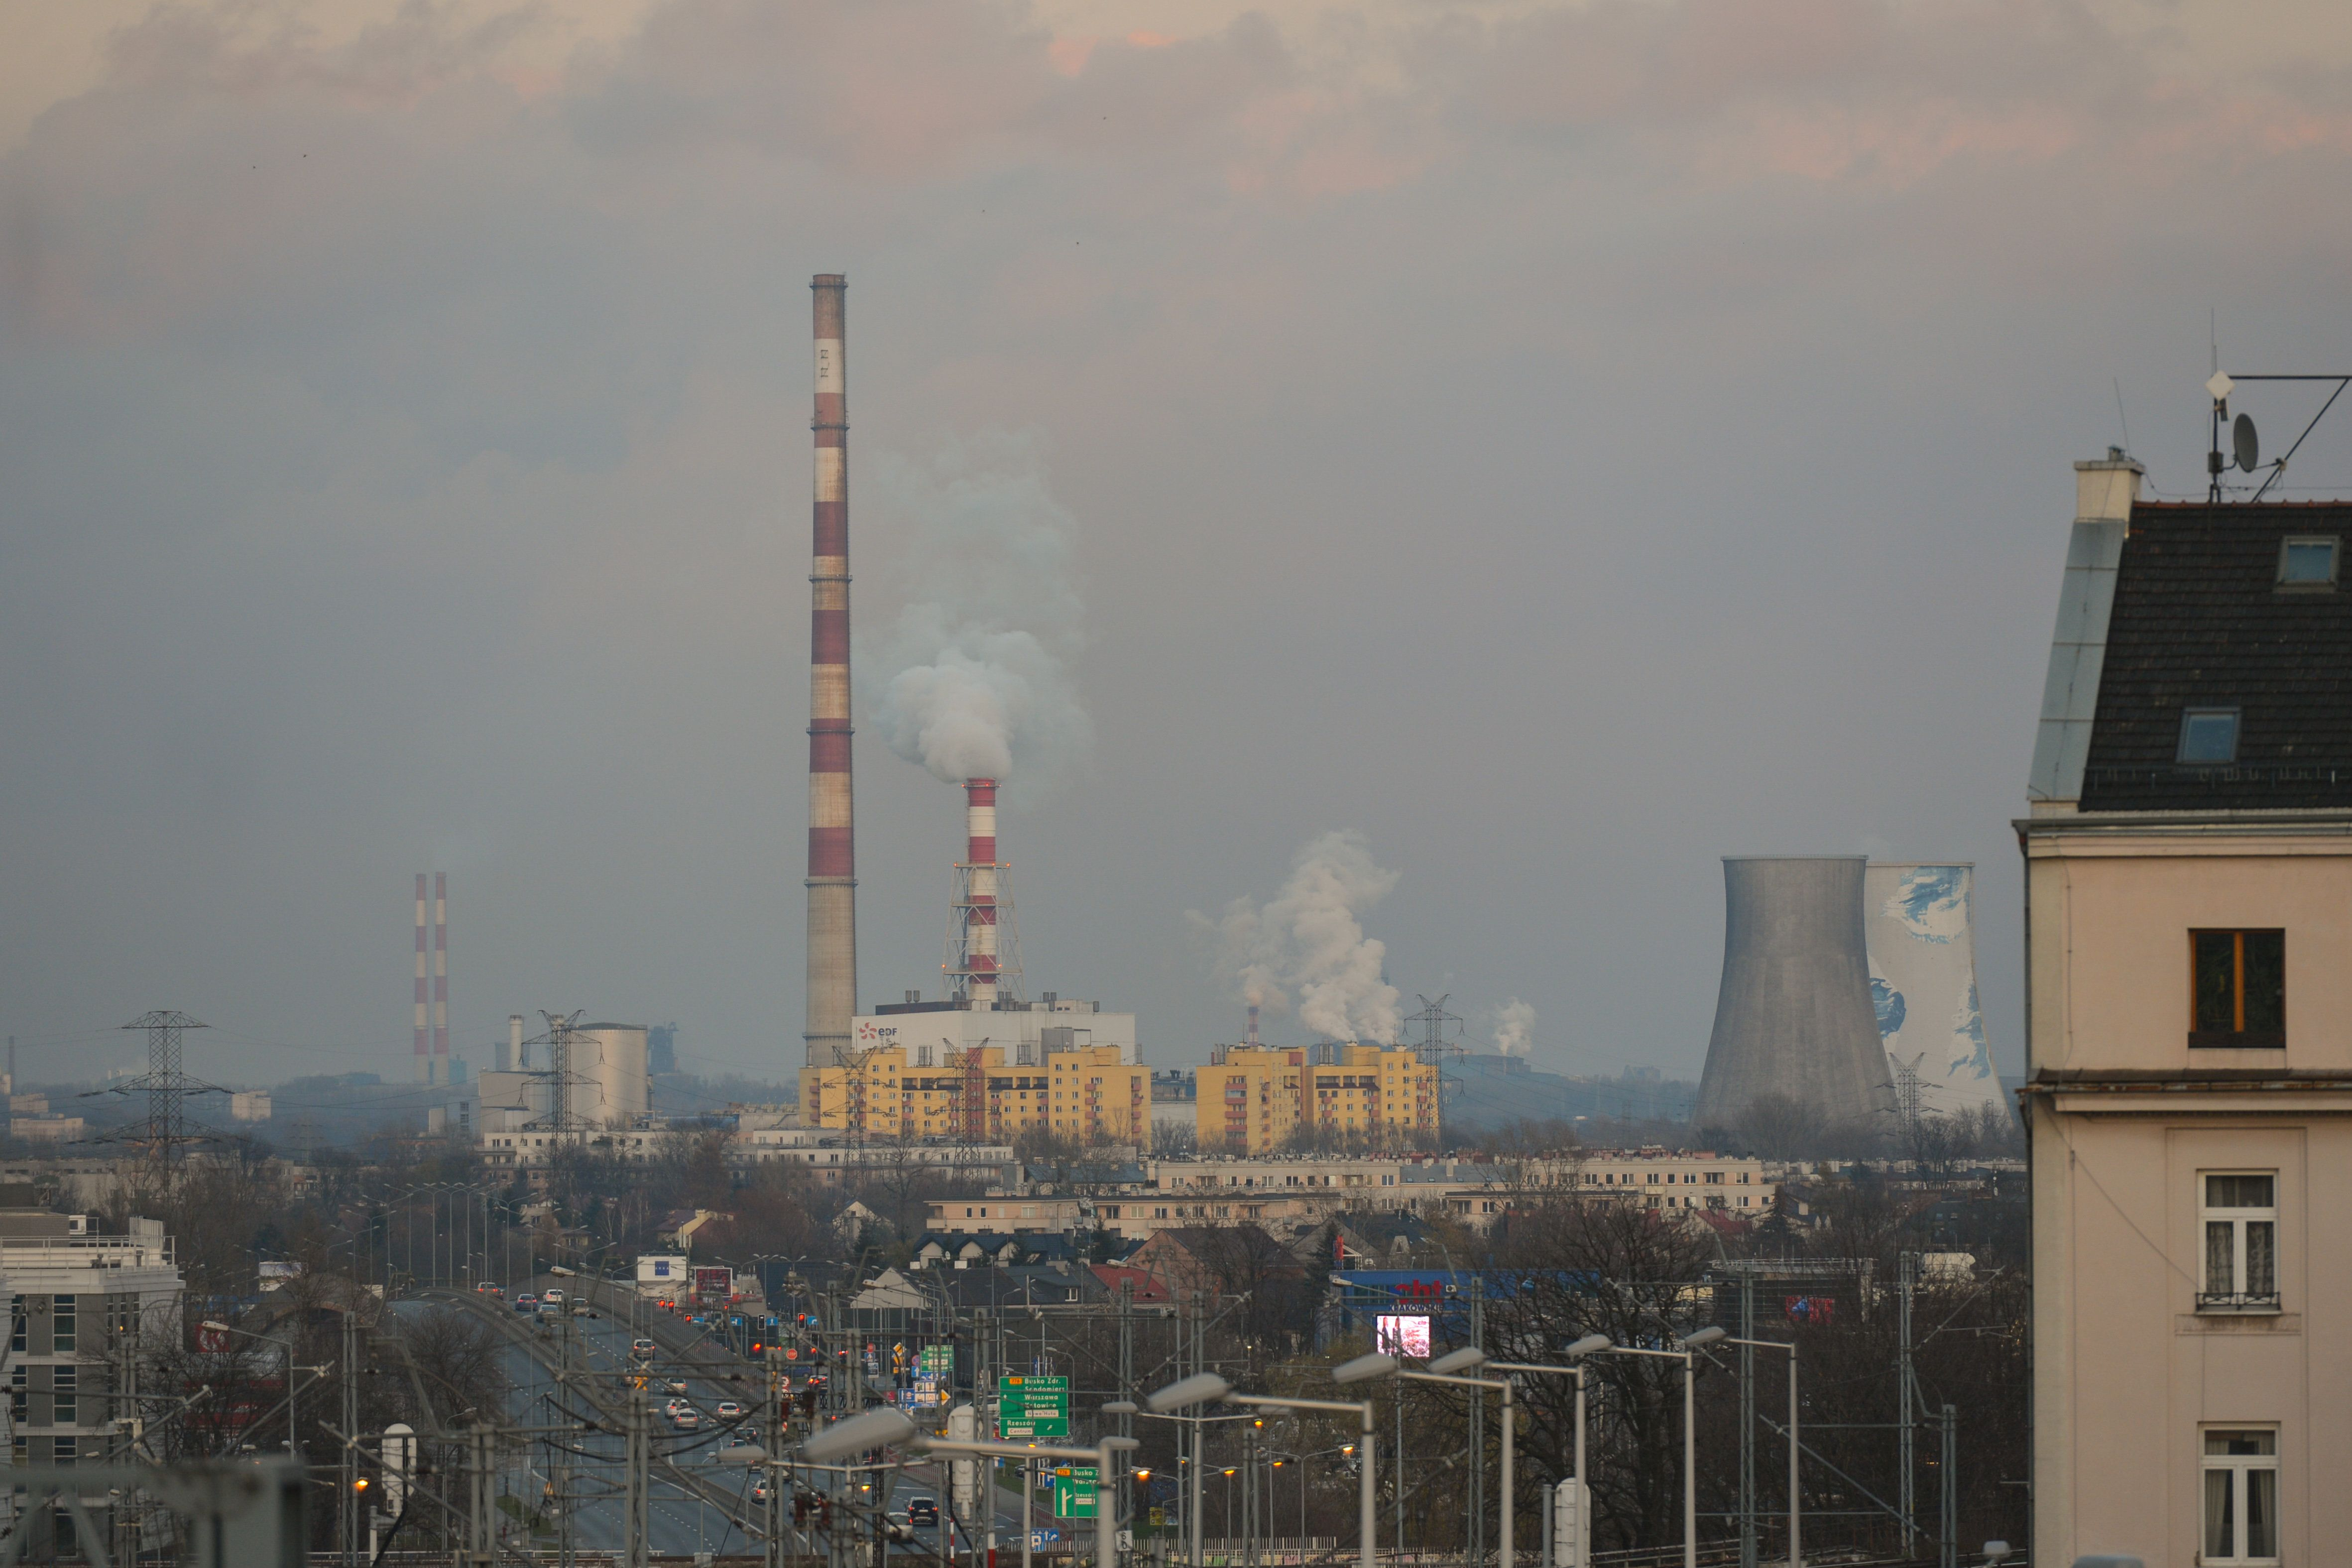 A view of Krakow Heat and Power Plant from Podgorze district of Krakow. On Sunday, 19 November 2017, in Krakow, Poland. (Photo by Artur Widak/NurPhoto via Getty Images)